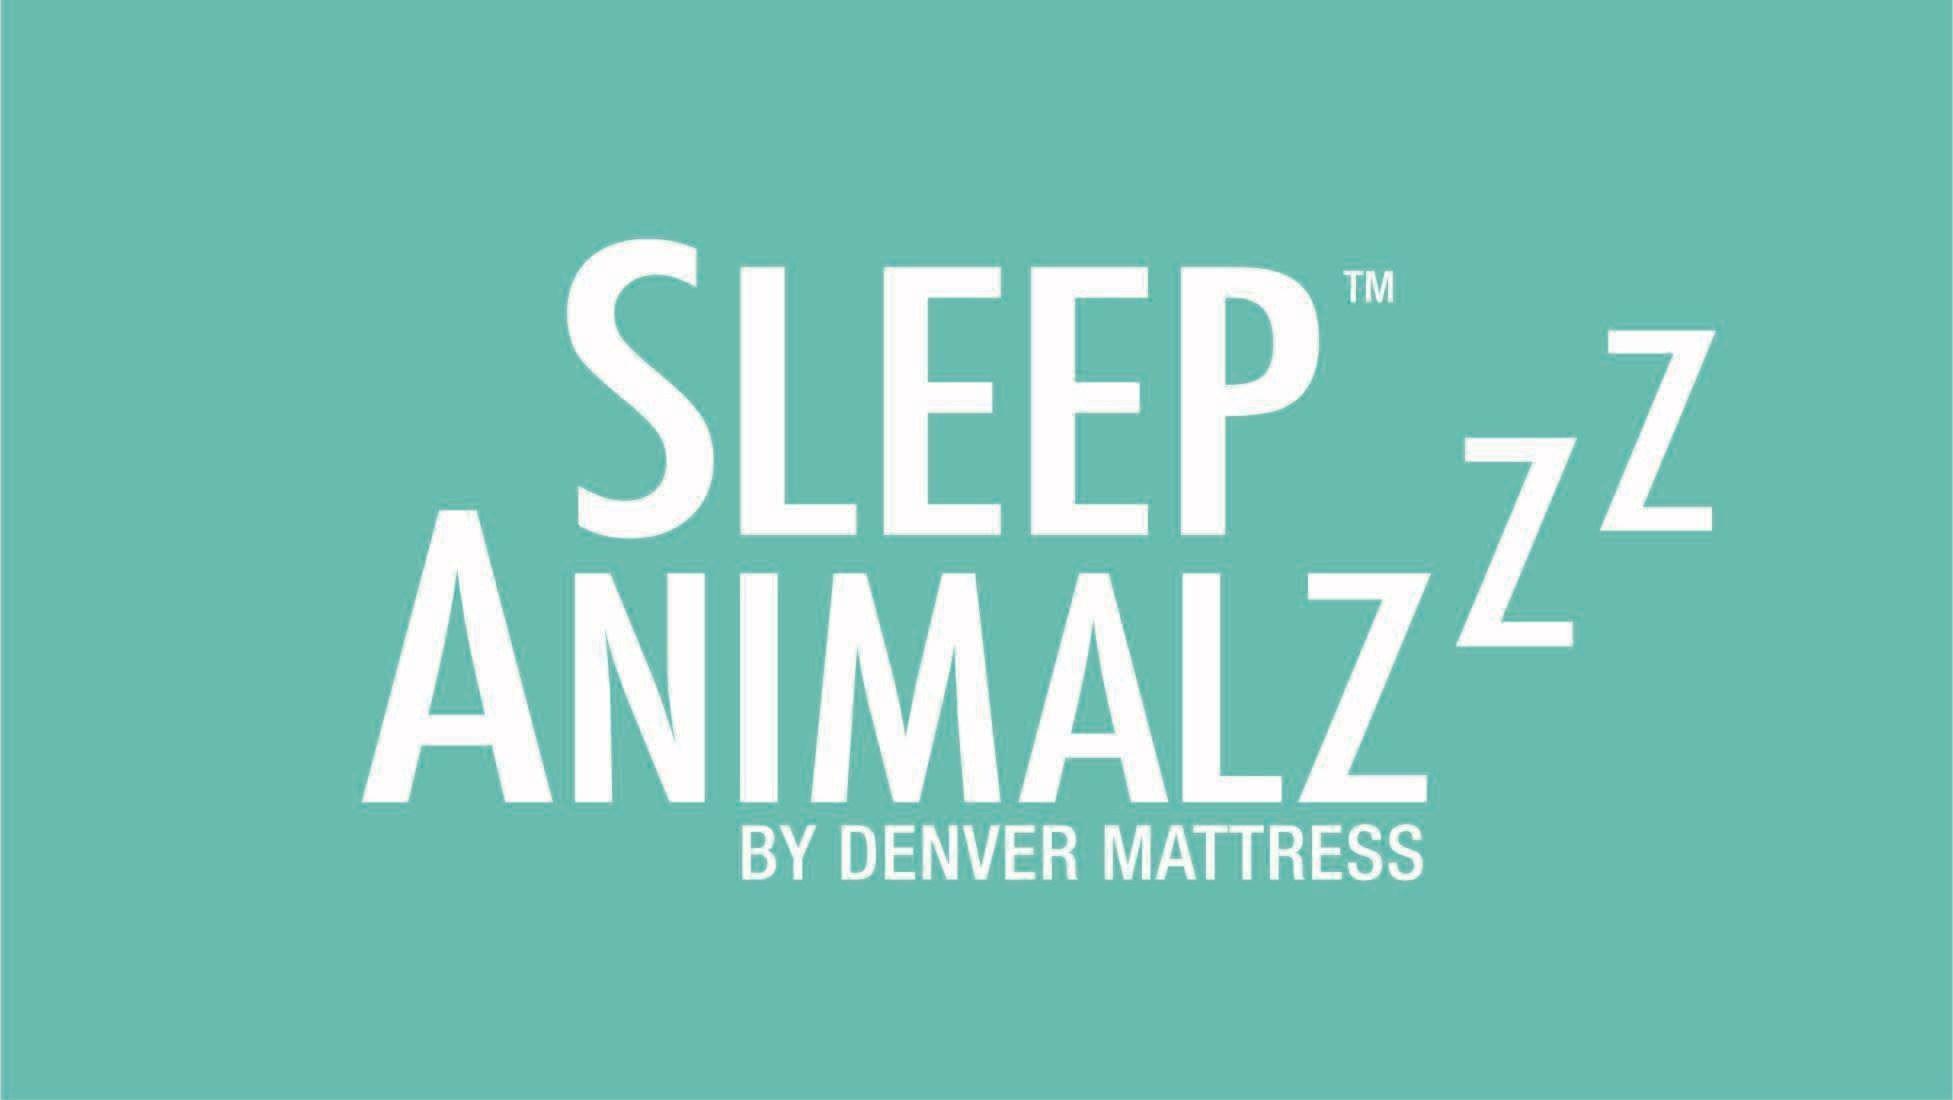 Denver Mattress pany Launches New Product Line and e